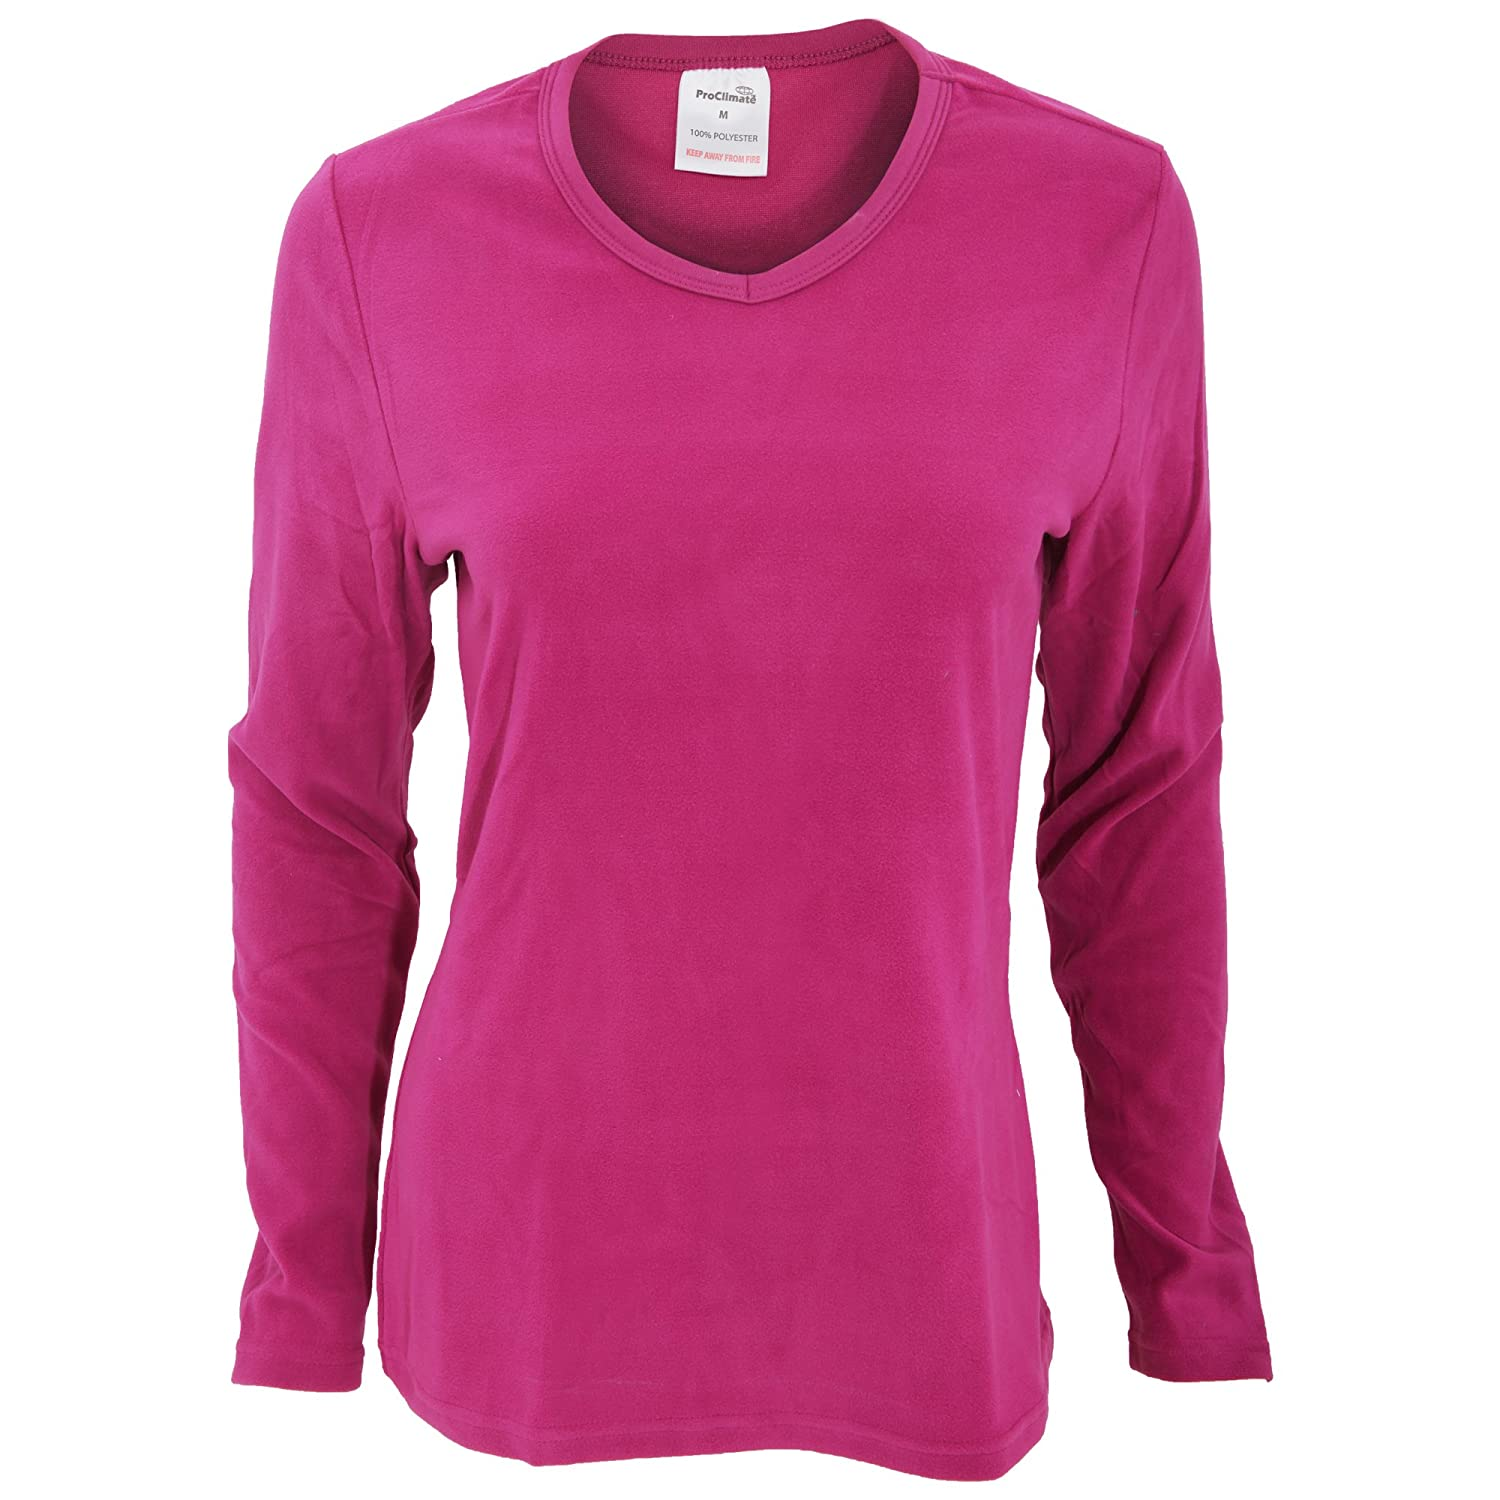 Pro Climate Womens/Ladies Thermal Long Sleeve V-Neck Top ProClimate